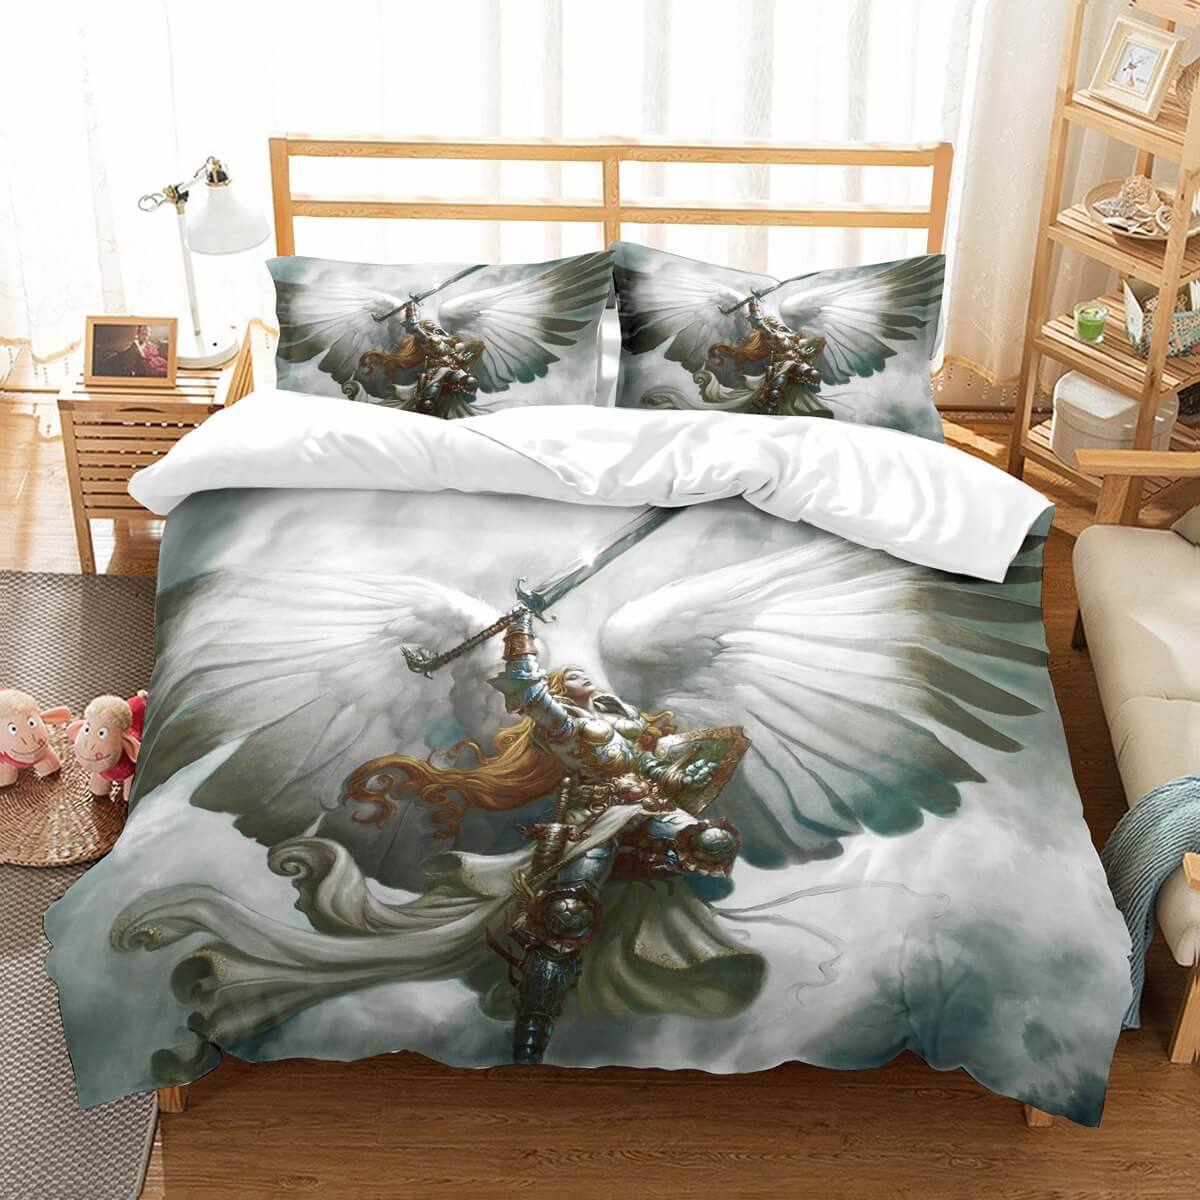 3D Customize Magic The Gathering Bedding Set Duvet Cover Set Bedroom Set Bedlinen